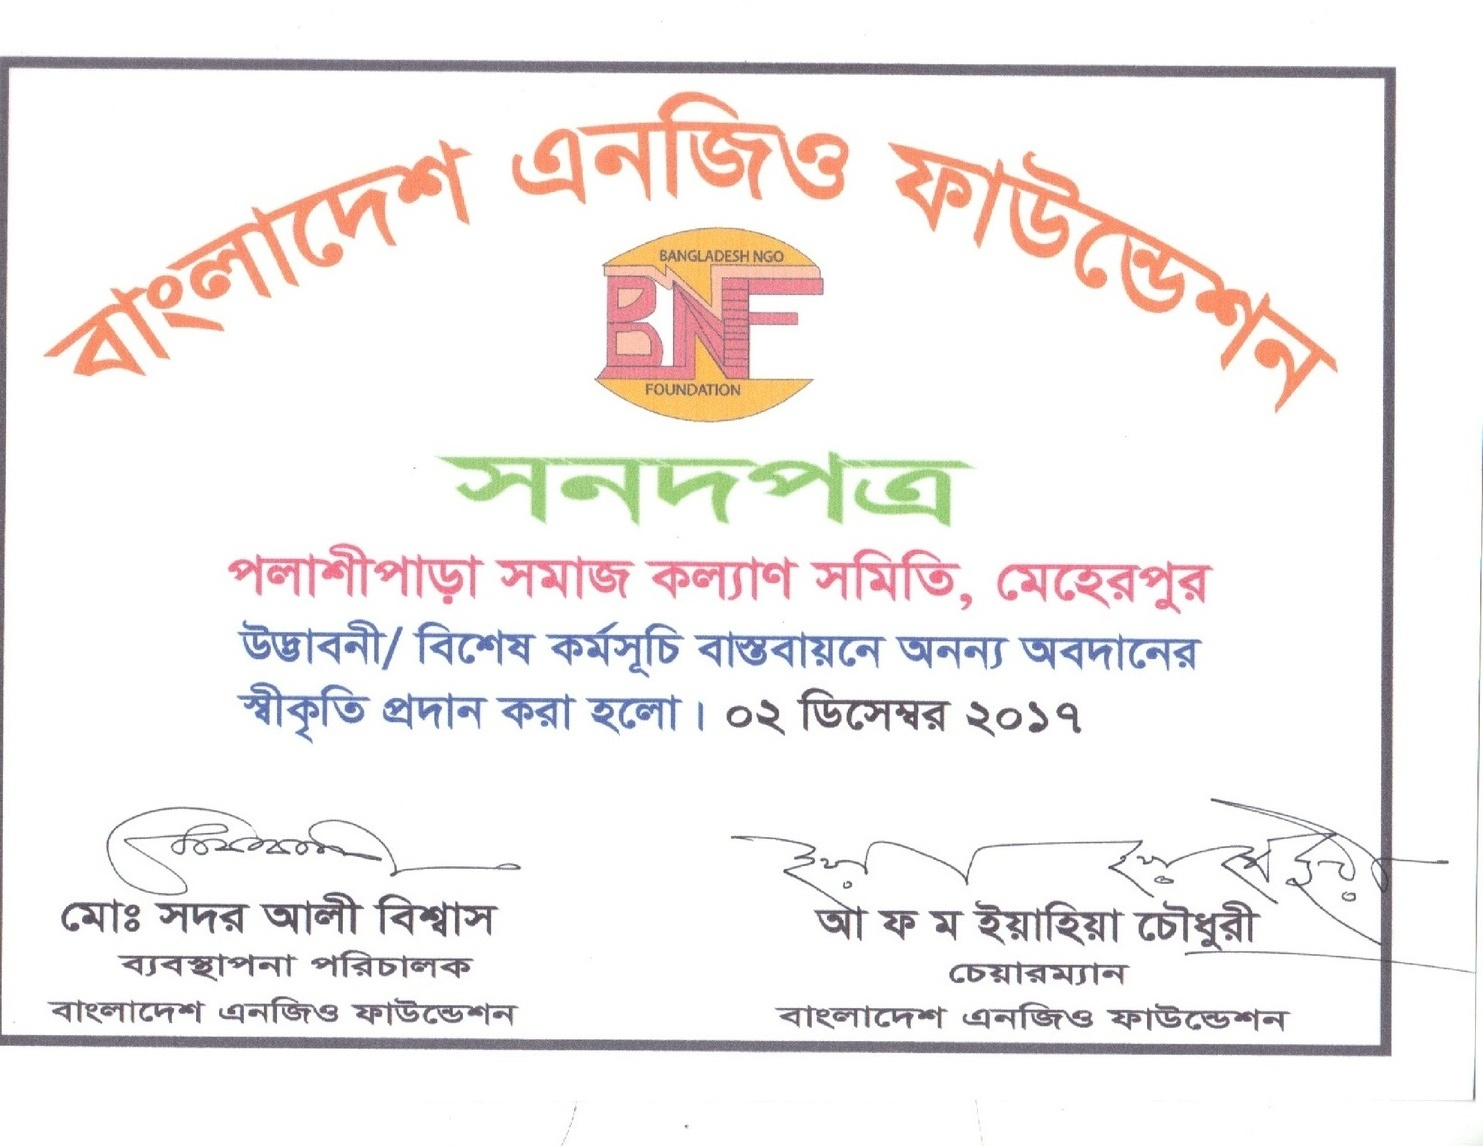 Bangladesh NGO Foundation